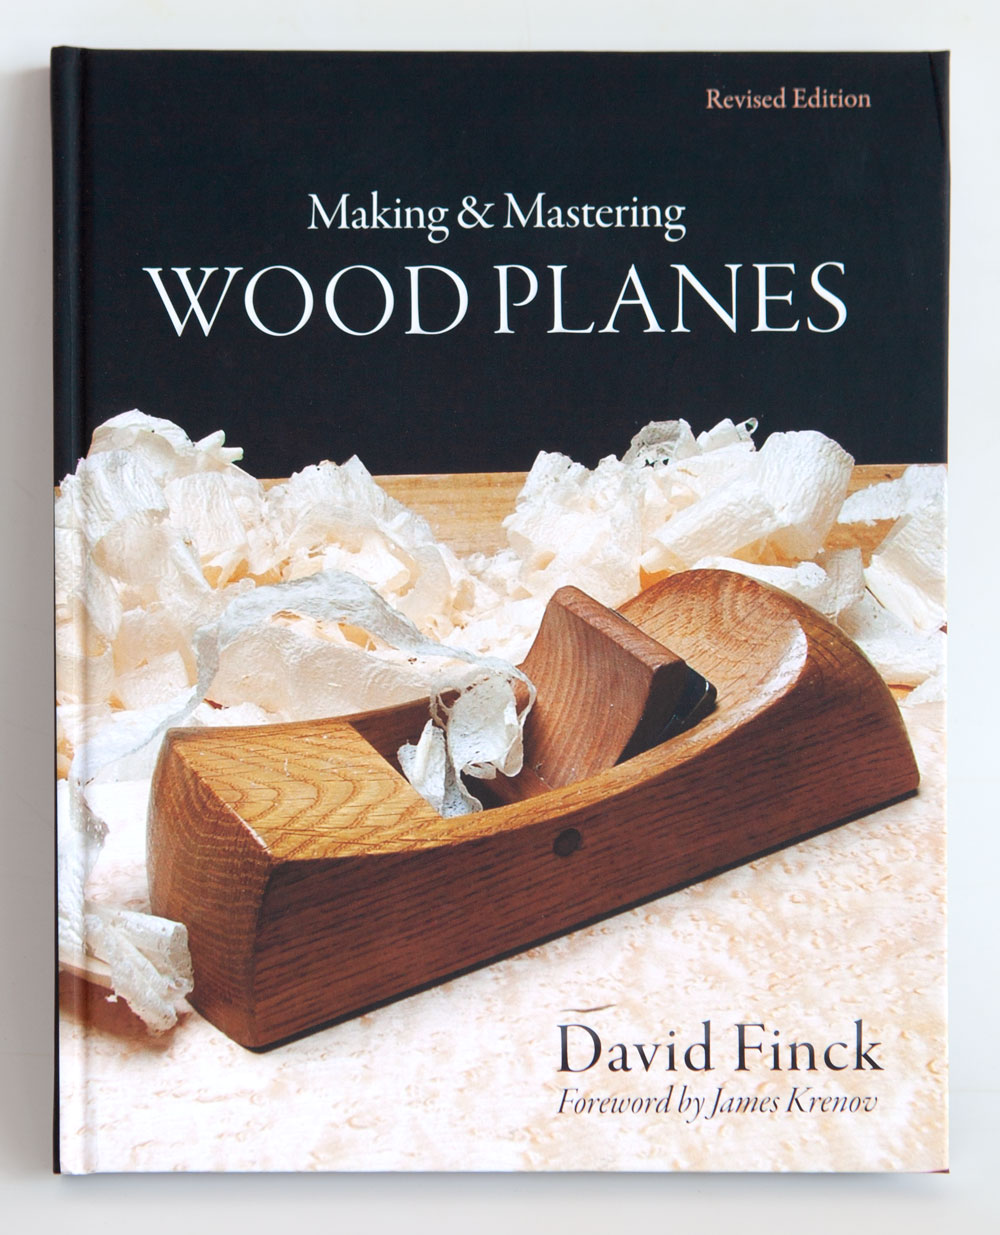 New: 'Making & Mastering Wood Planes'